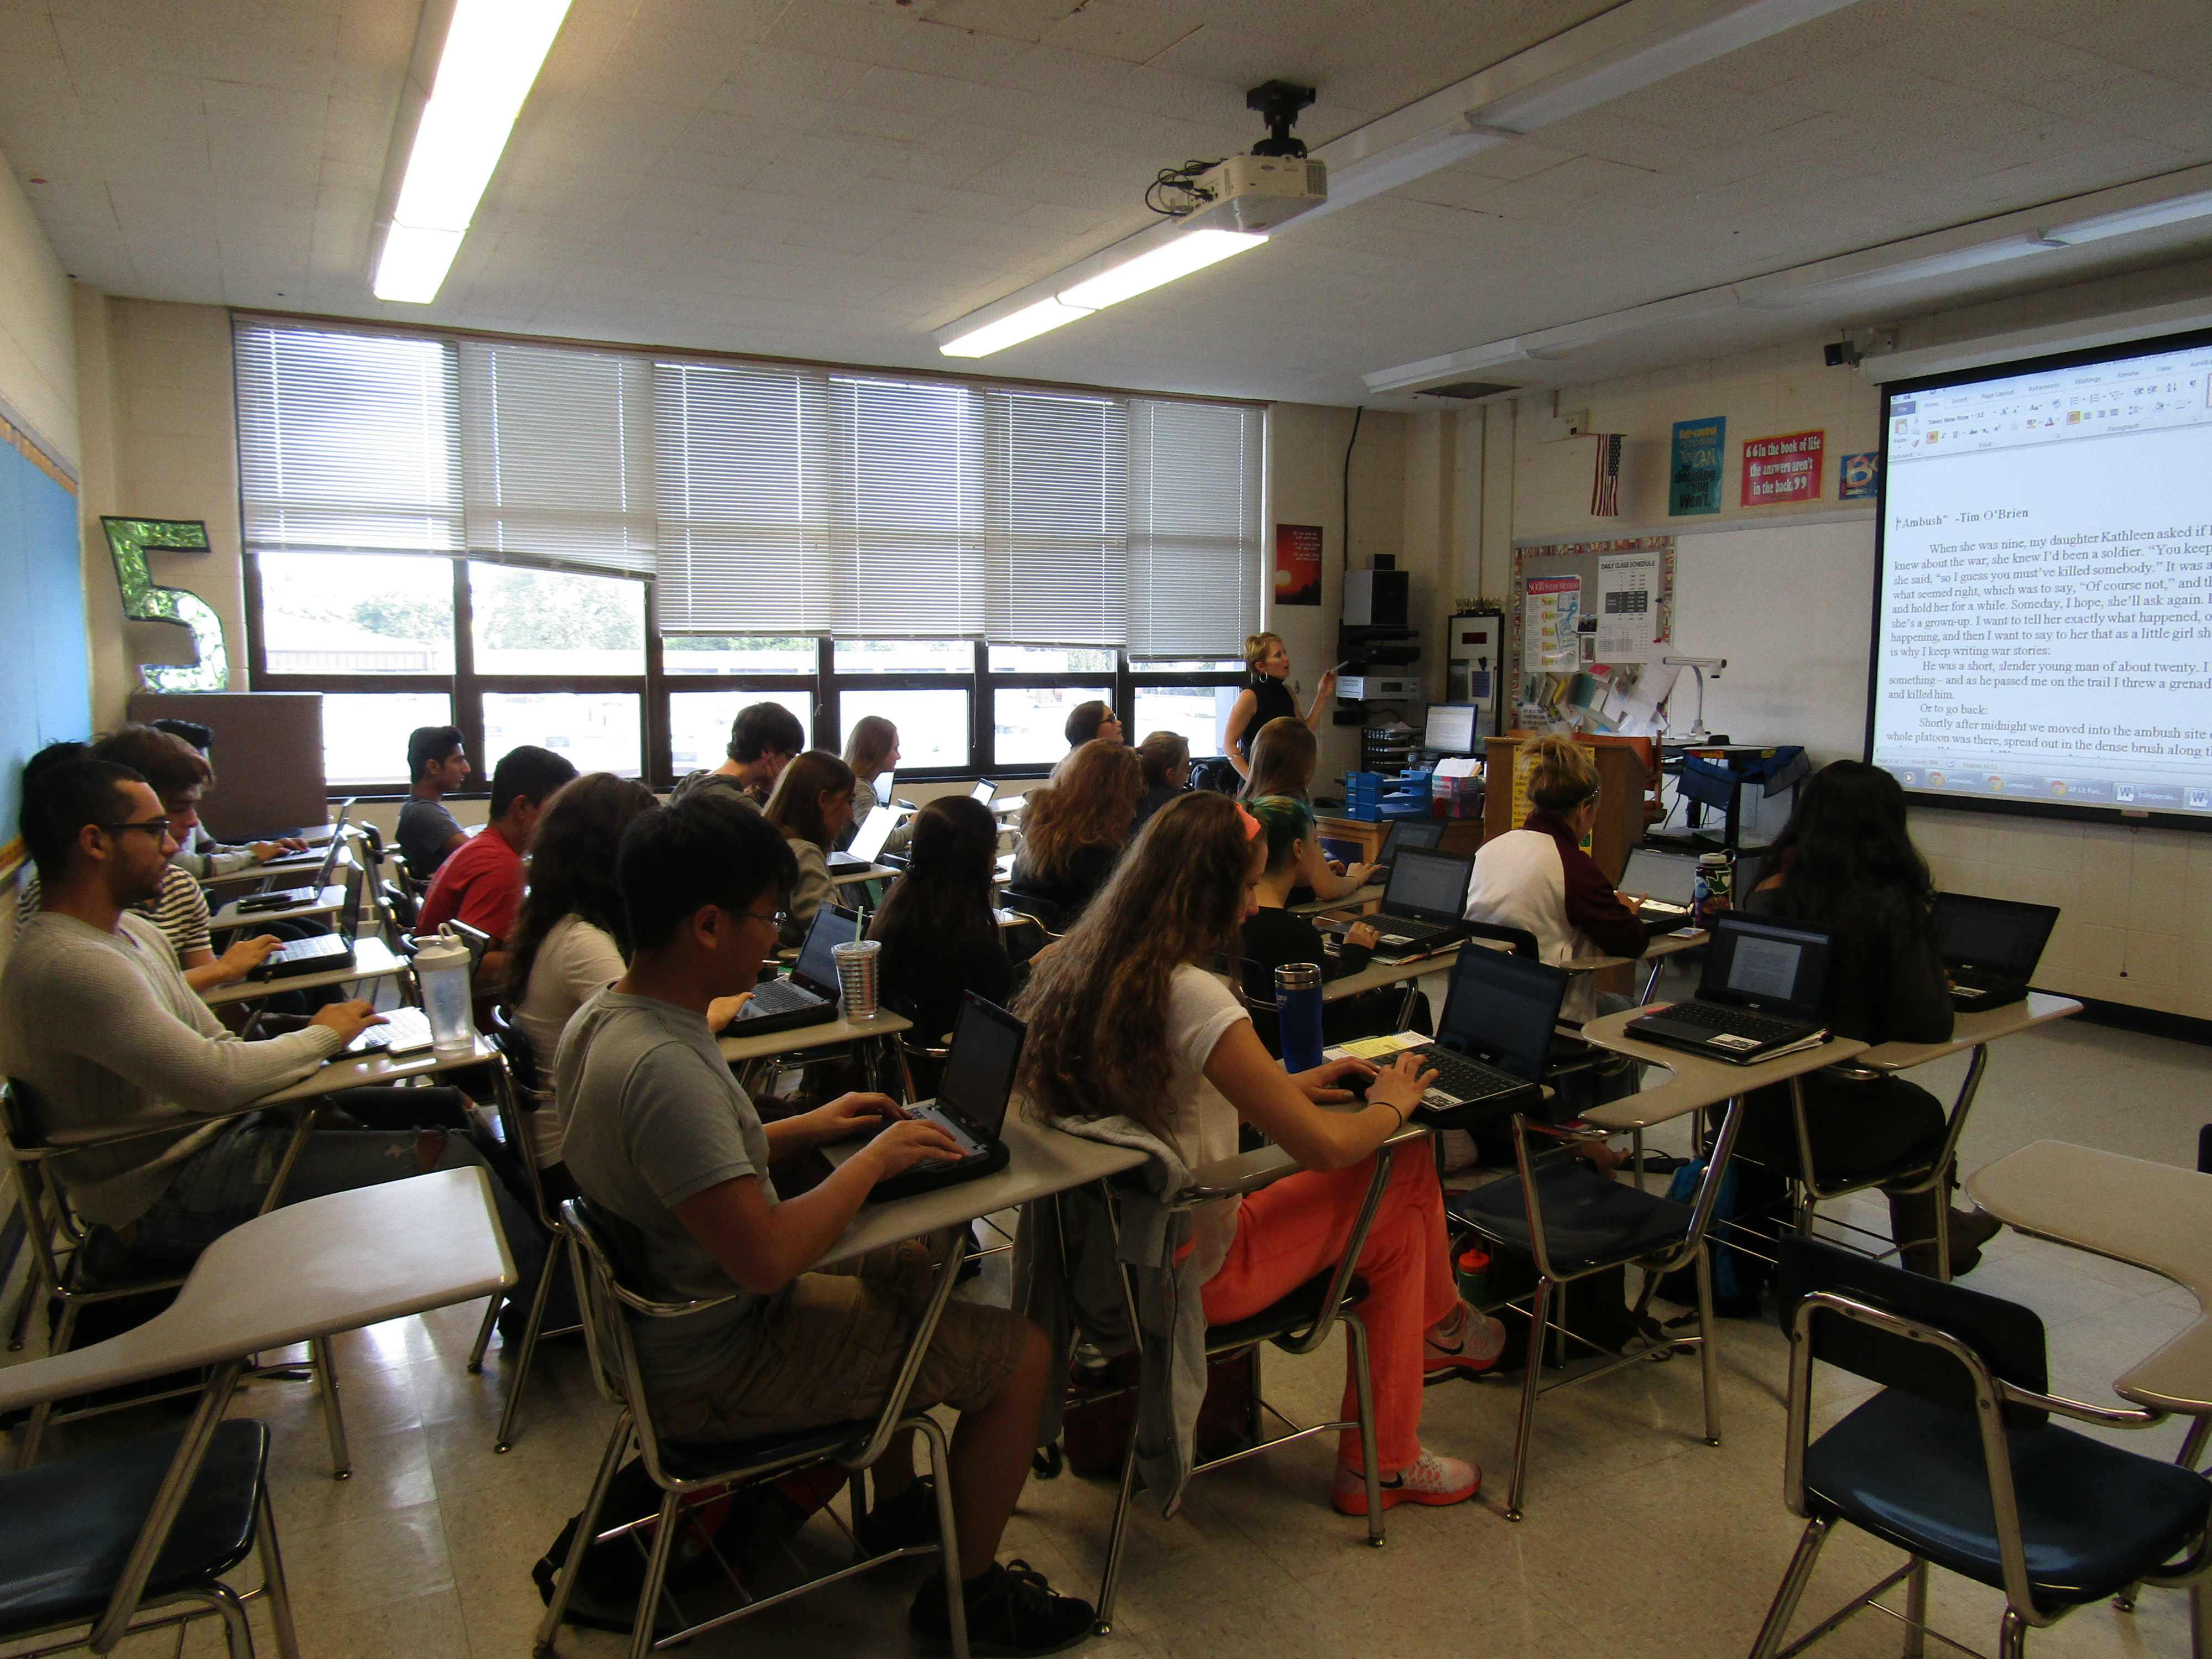 Teachers and students throughout the school are using Chromebooks to enhance the learning experience.